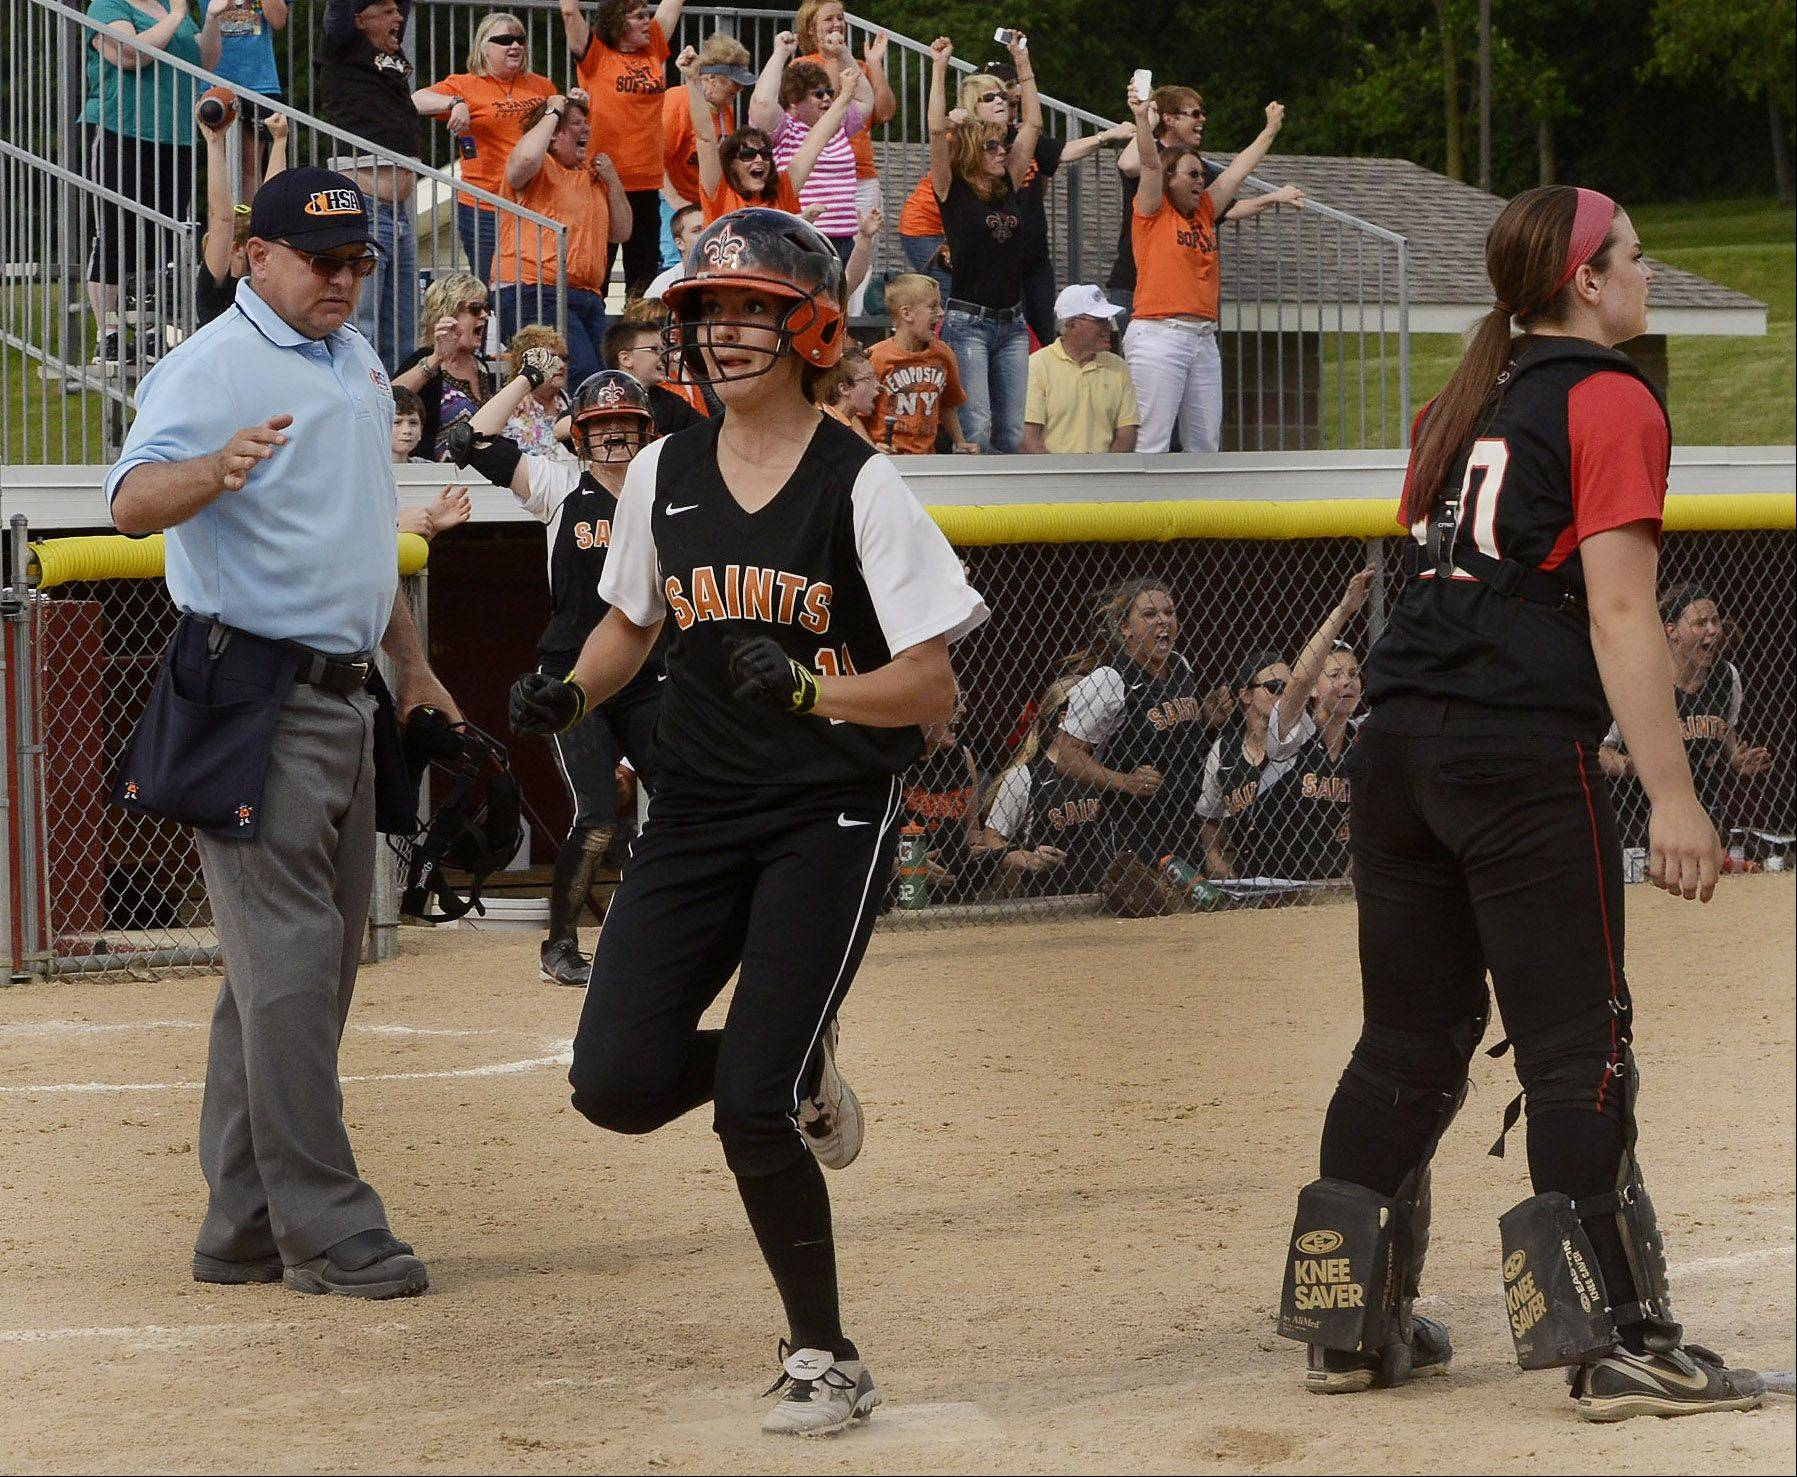 Tess Hupe of St. Charles East scores the game-winning run.